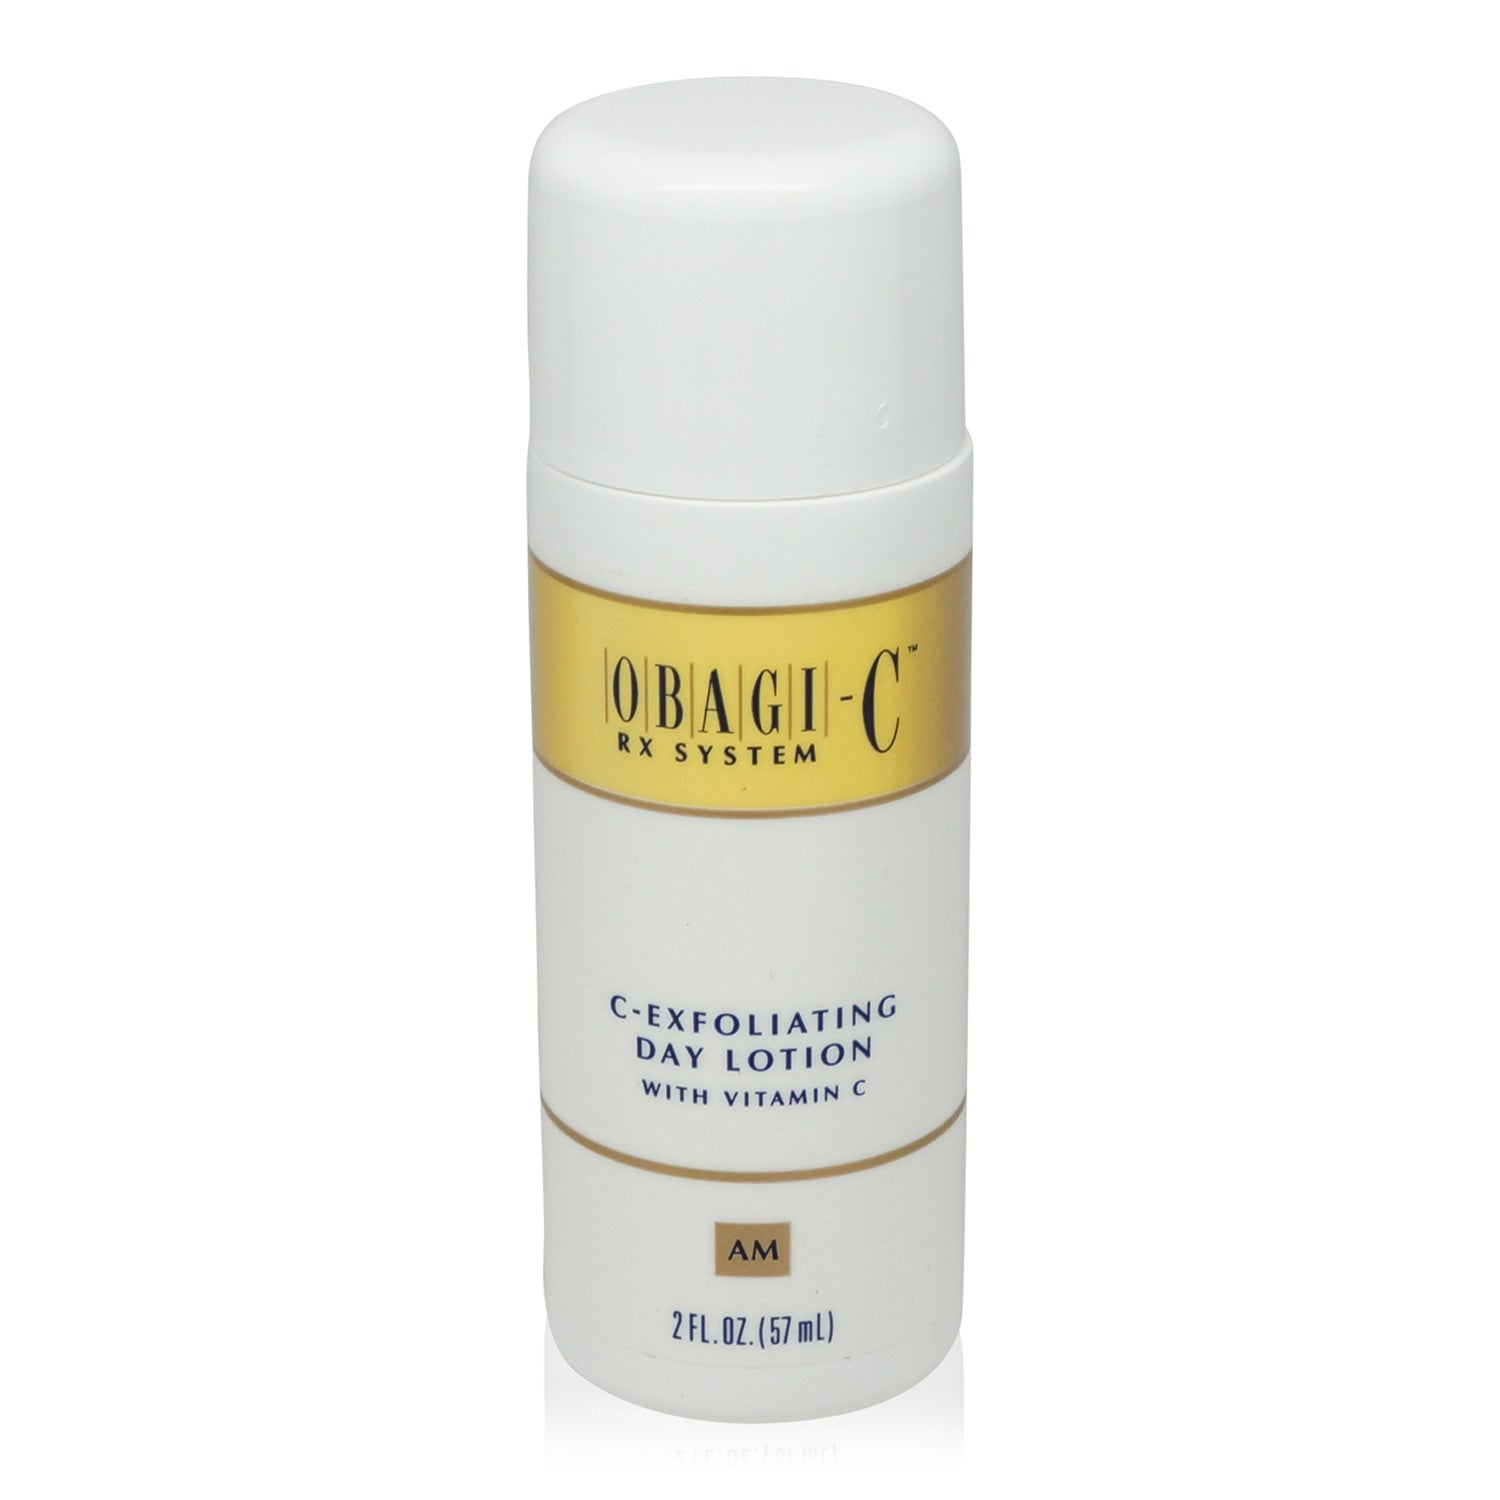 OBAGI ~ OBAGI-C ~ RX C-EXFOLIATING DAY LOTION ~ 2.0 OZ